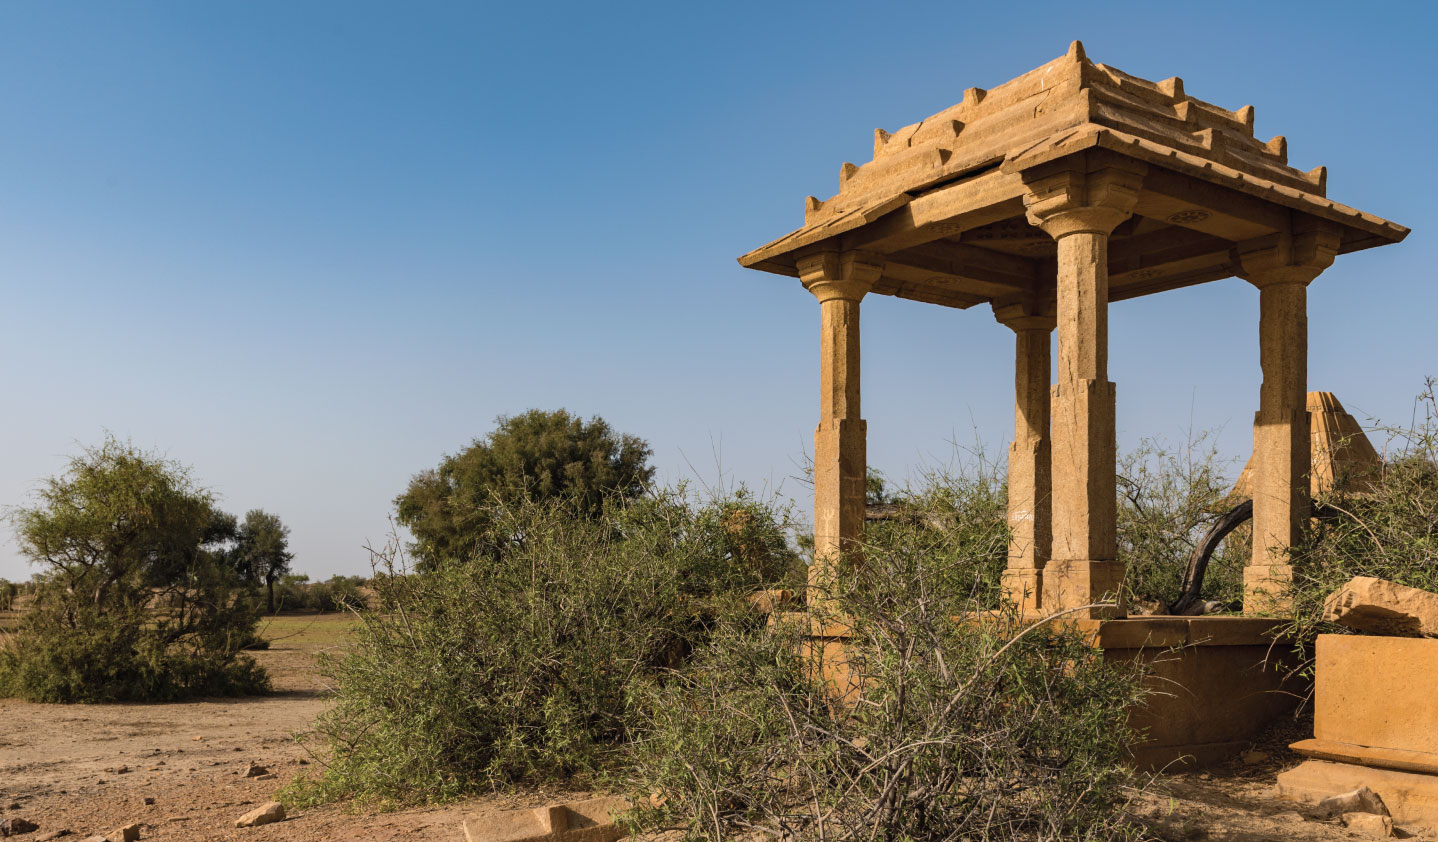 Mountain Bike Trail at Suryagarh, Jaisalmer, Rajasthan